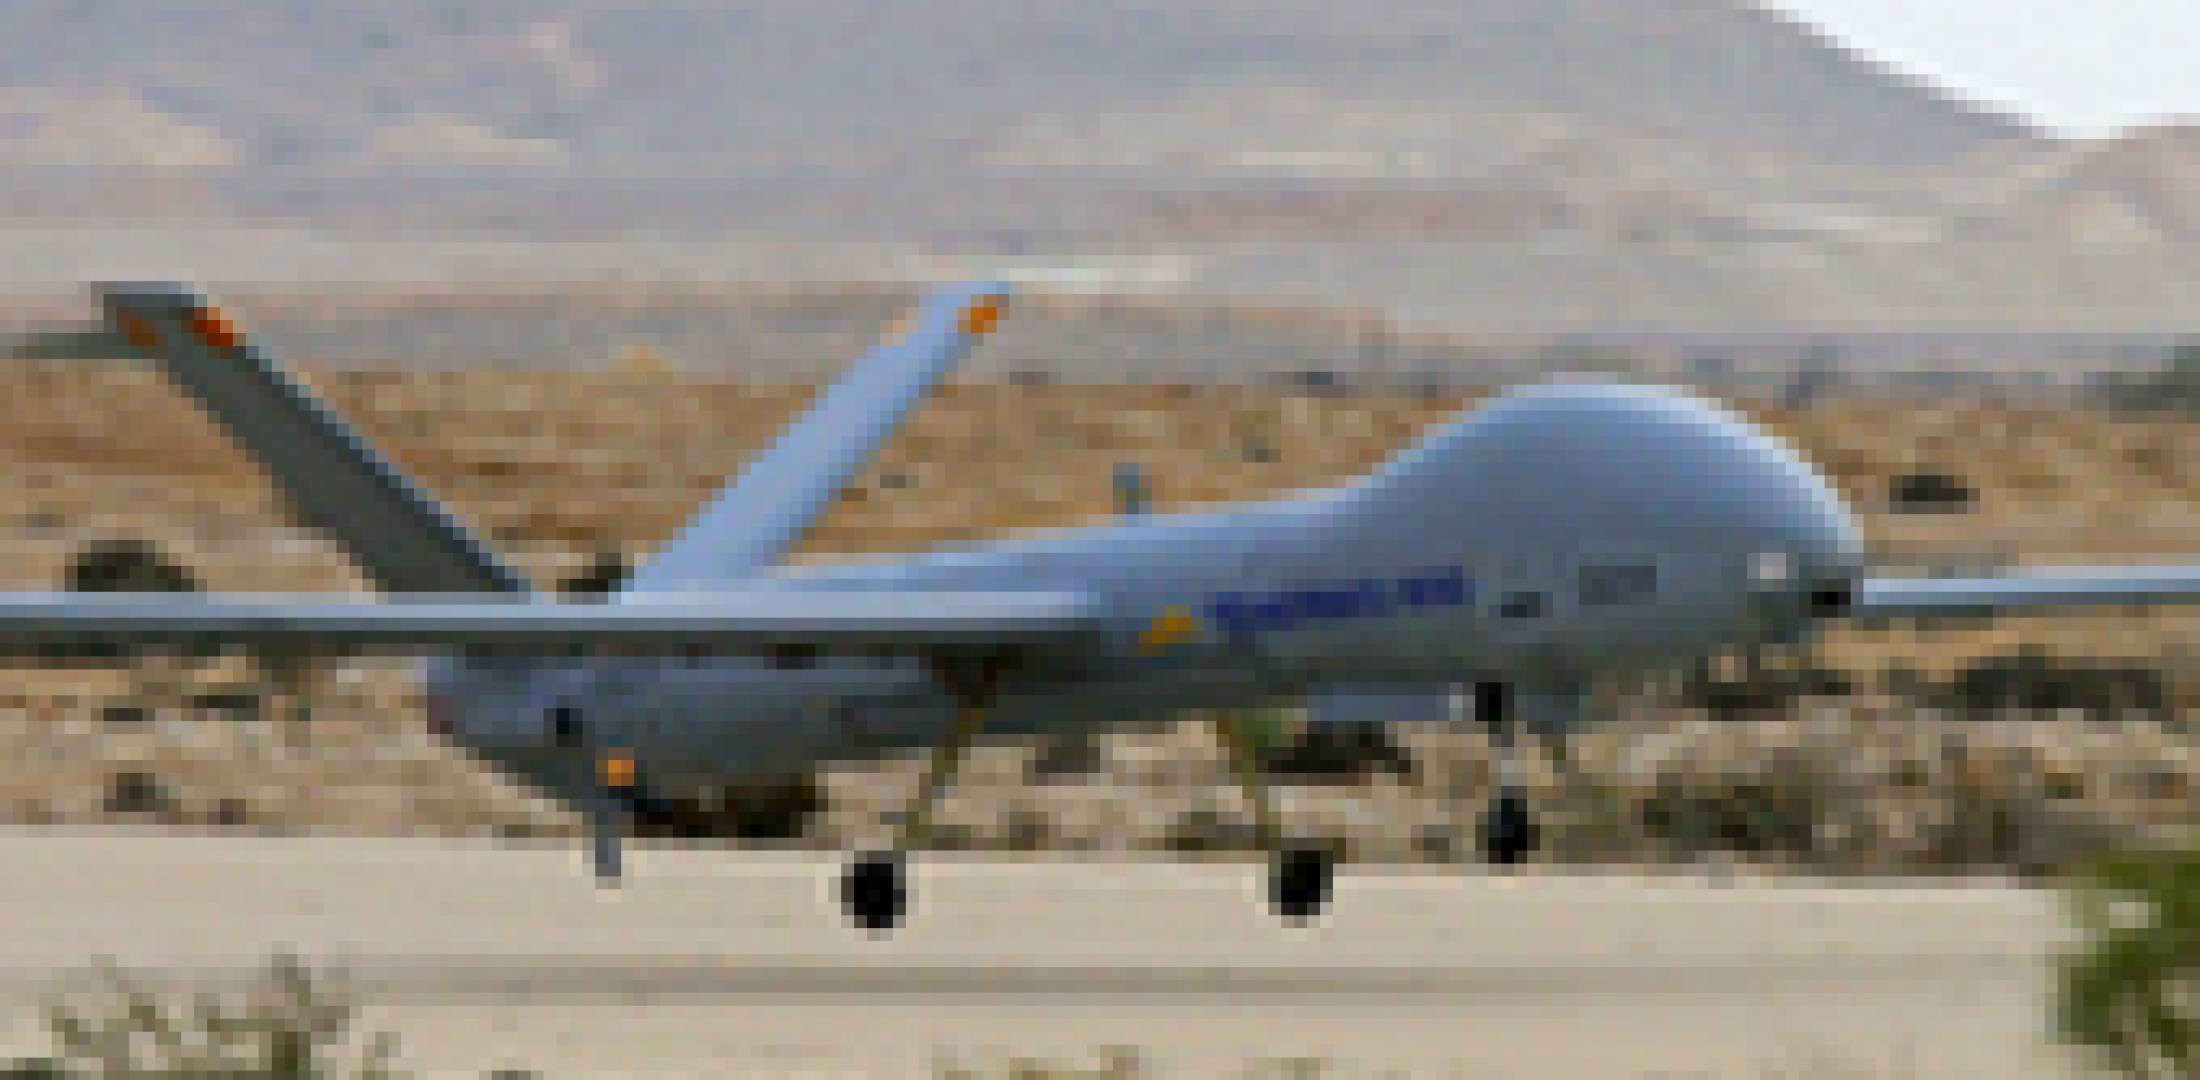 Elbit's latest UAV is the Hermes 900, which made its first flight last Decemb...